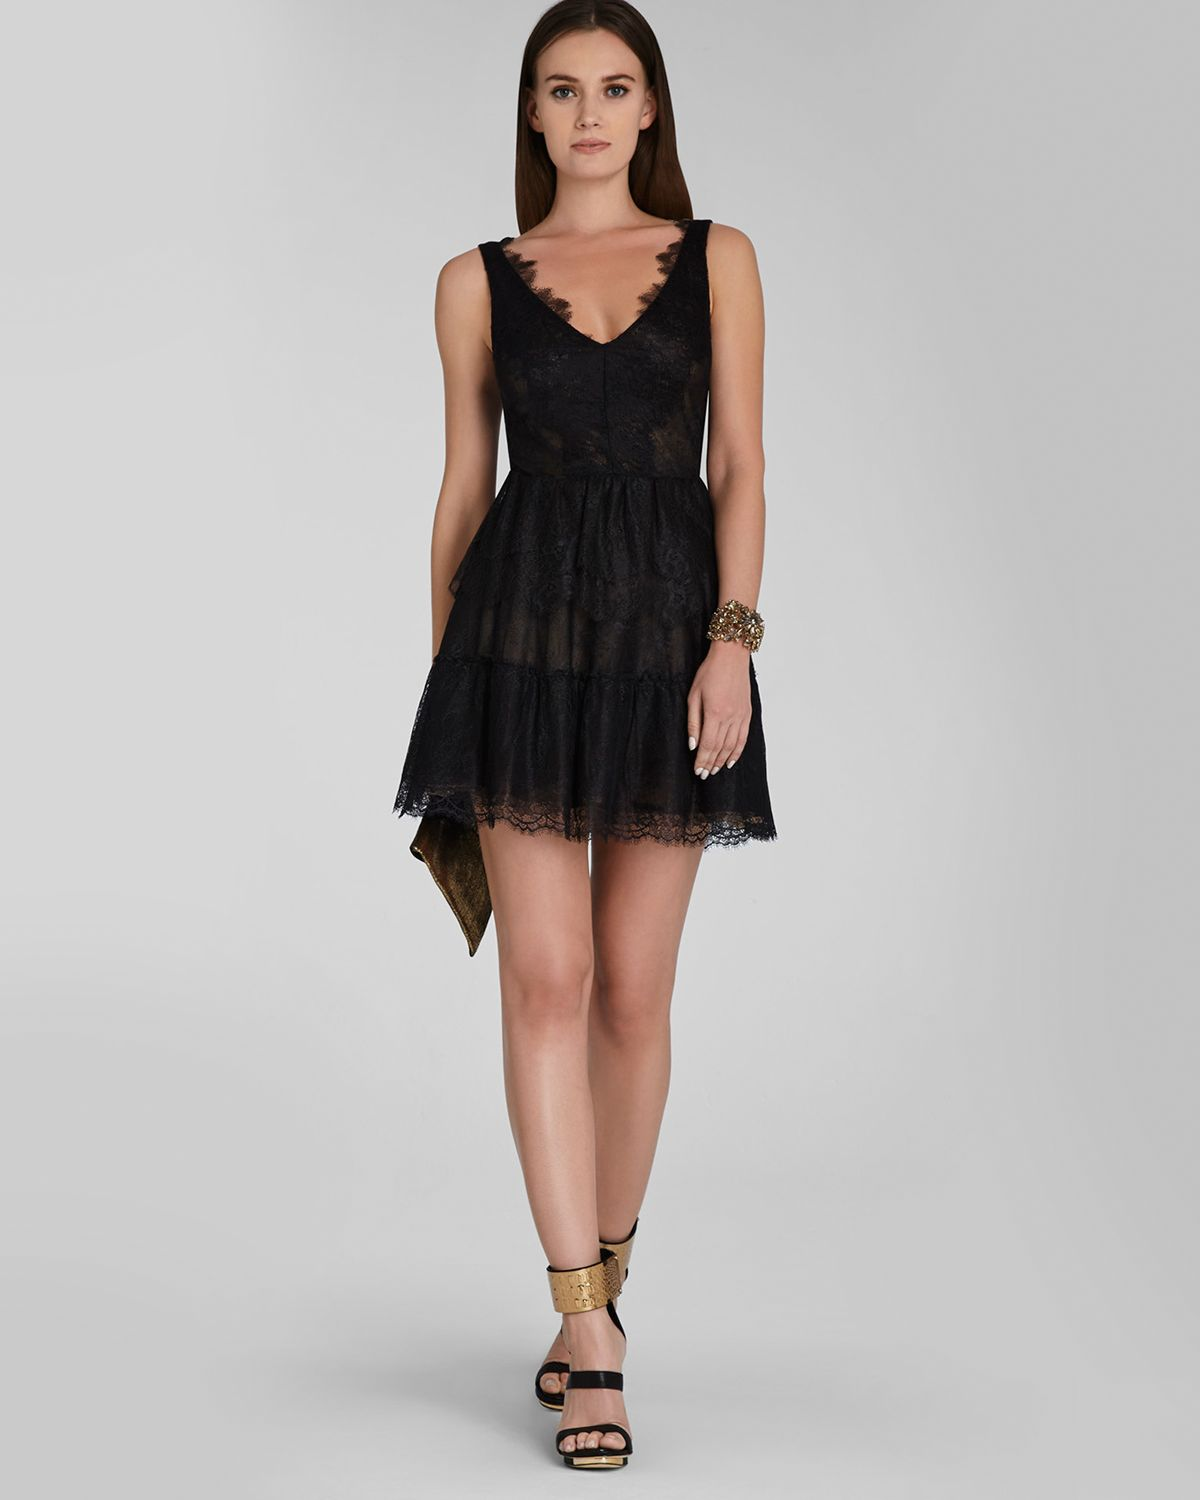 Bcbgmaxazria Dress - V Neck Lace Fit And Flare Willa in Black | Lyst